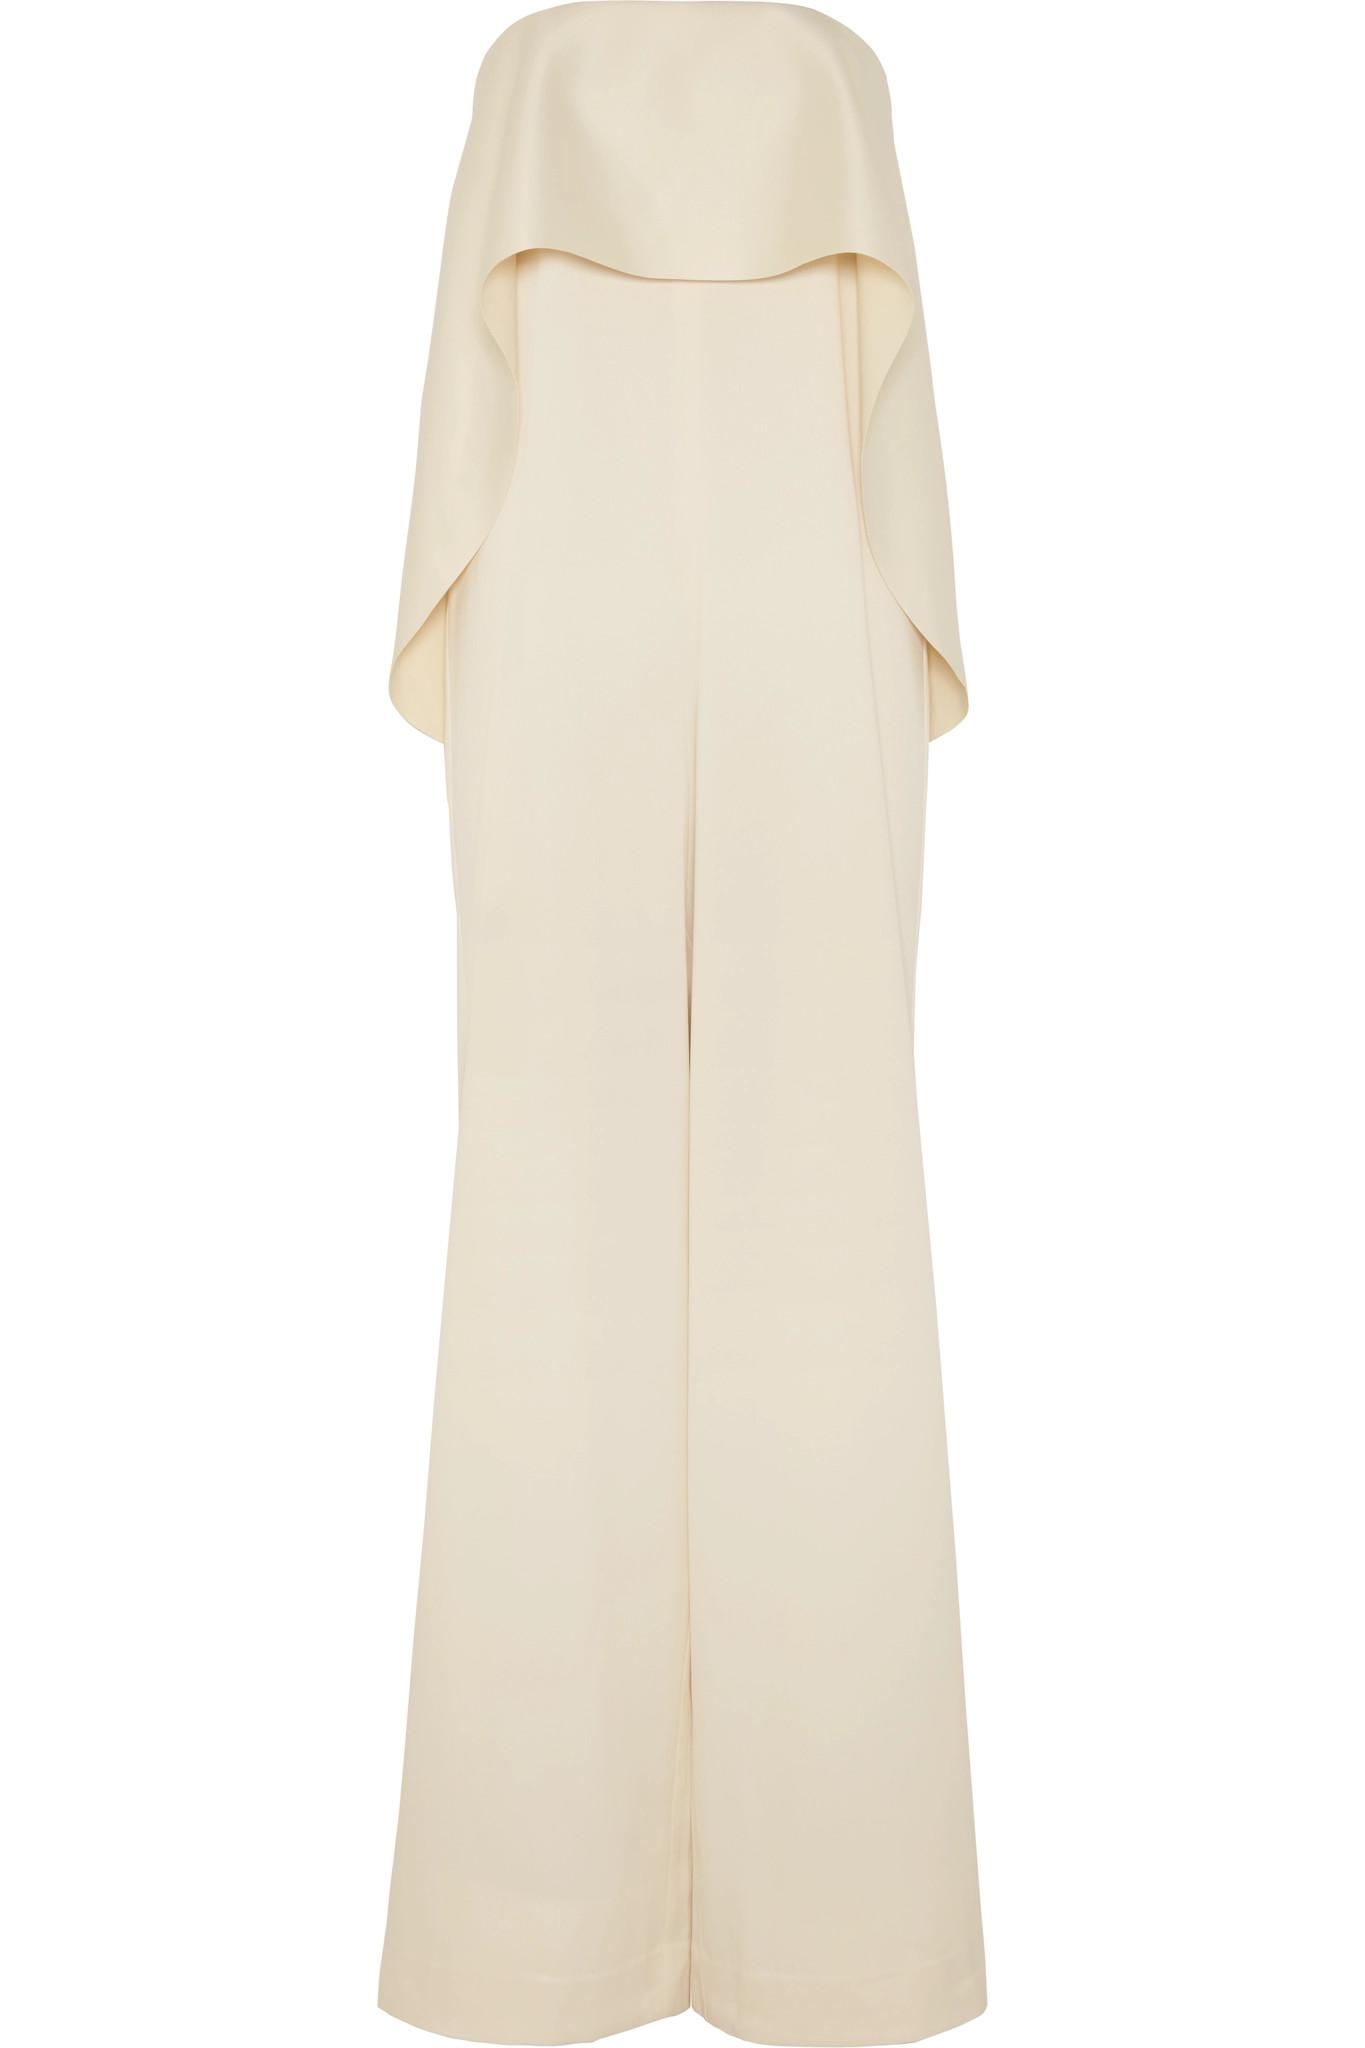 022cf0a069e Solace London Cadenza Ruffled Bonded Satin Jumpsuit in Natural - Lyst